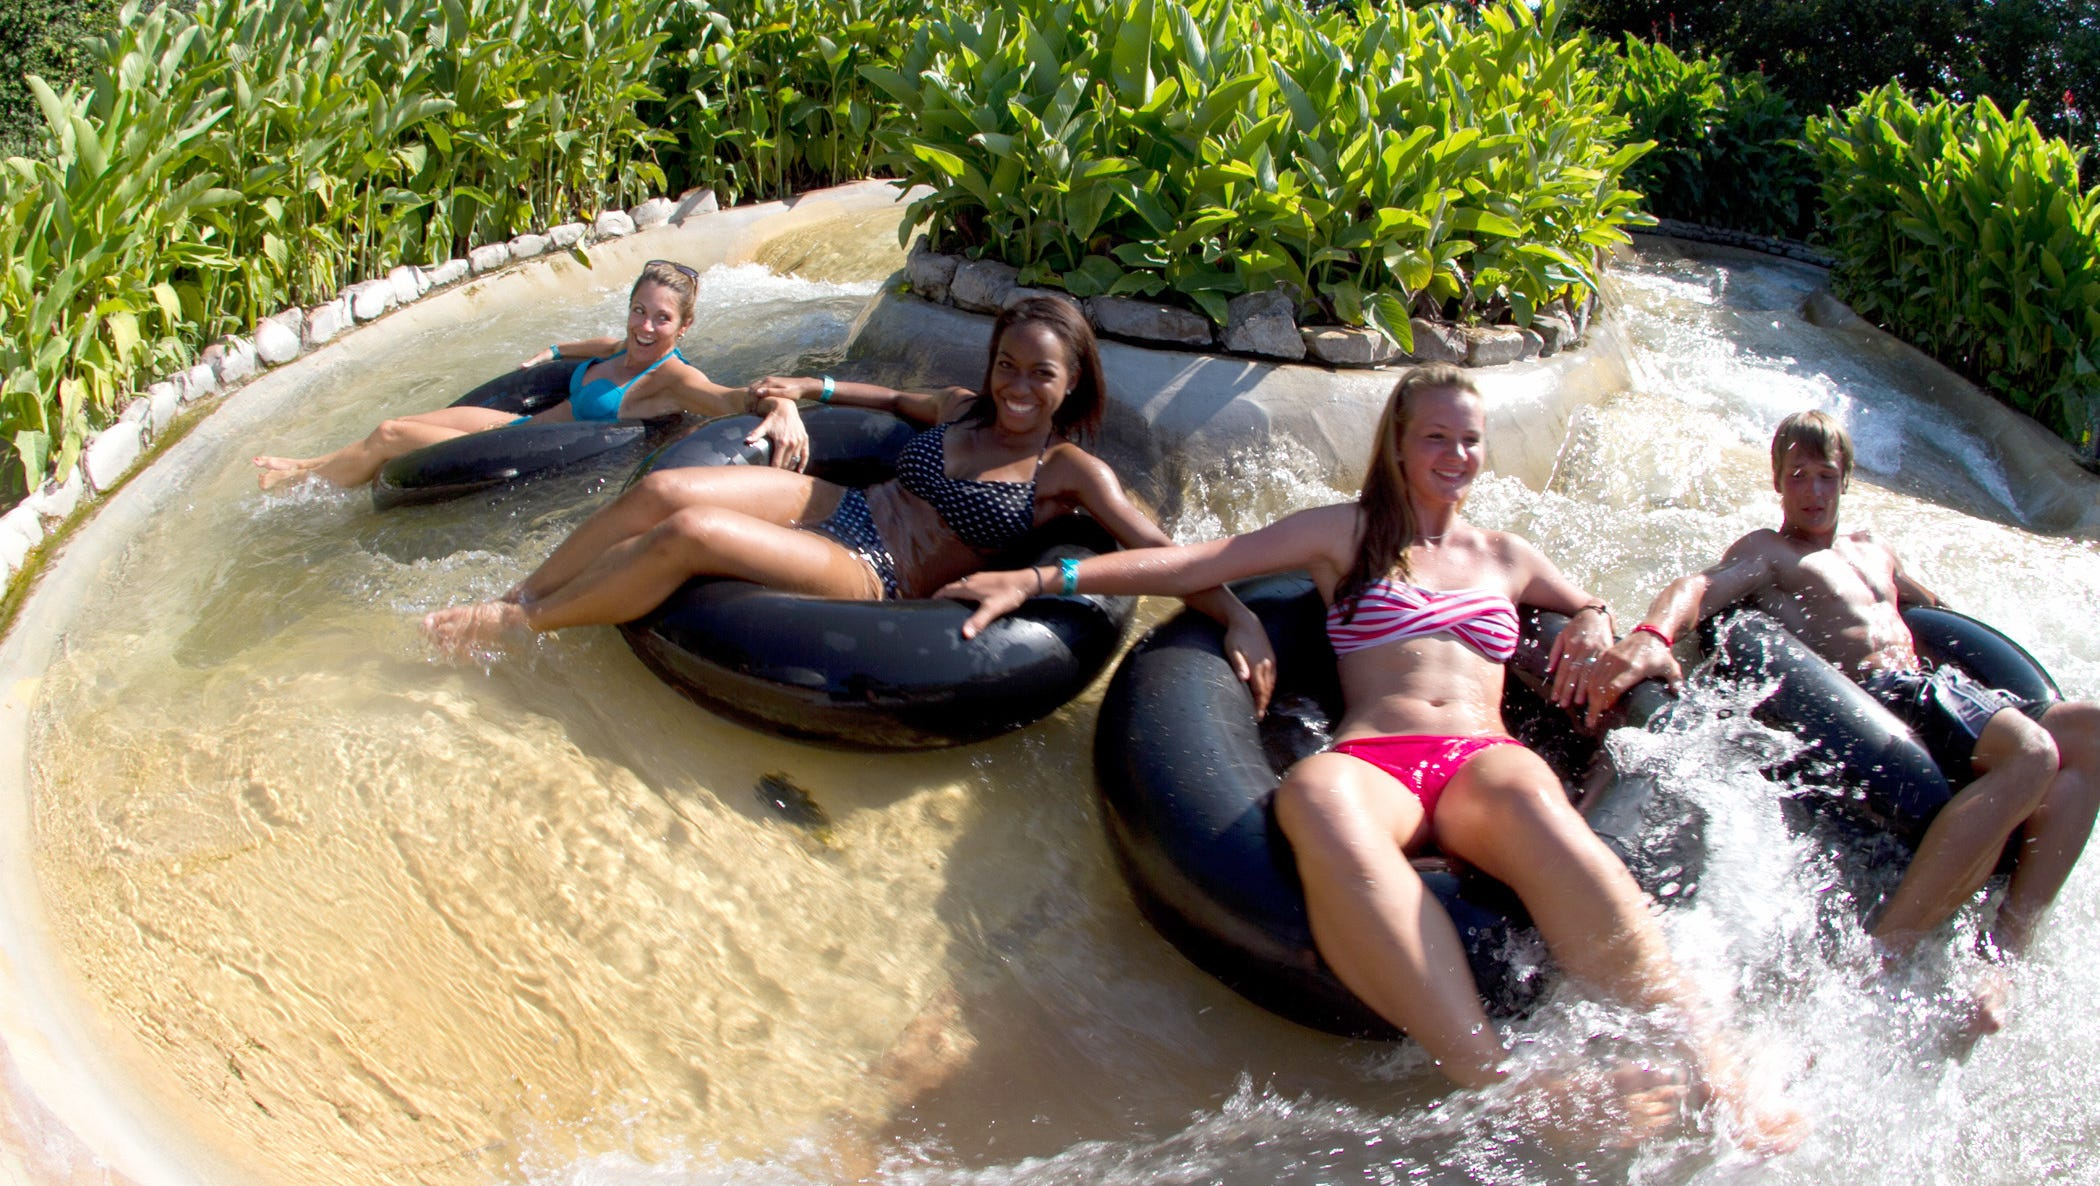 Nothing beats the heat of a Texas summer like a day at Schlitterbahn near San Antonio, the runner-up in our Readers' Choice Awards for Best American Water Park. At this popular water park between Austin and San Antonio, patrons cool off with three miles of tubing, three uphill water slides and The Falls, the world's longest water-park ride.